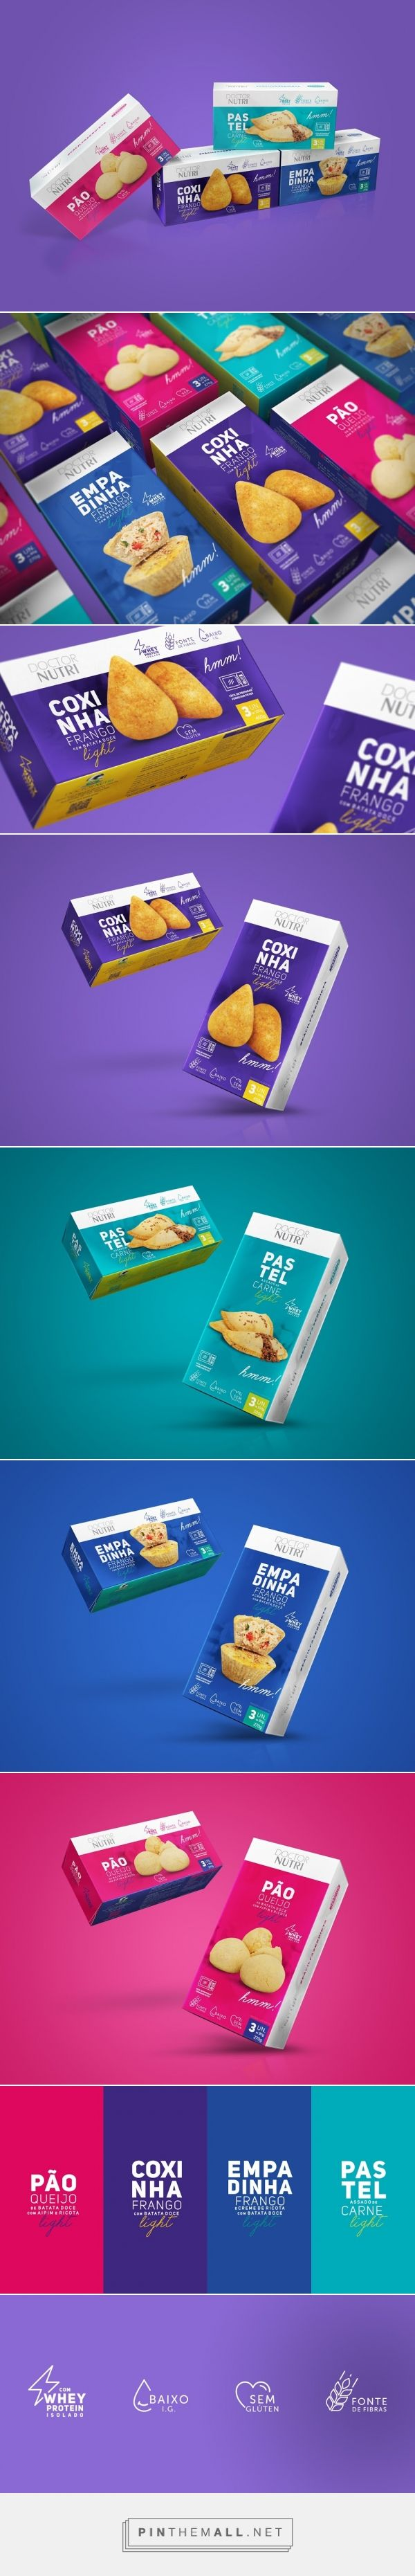 Doctor Nutri - Packaging of the World - Creative Package Design Gallery - http://www.packagingoftheworld.com/2016/03/doctor-nutri.html